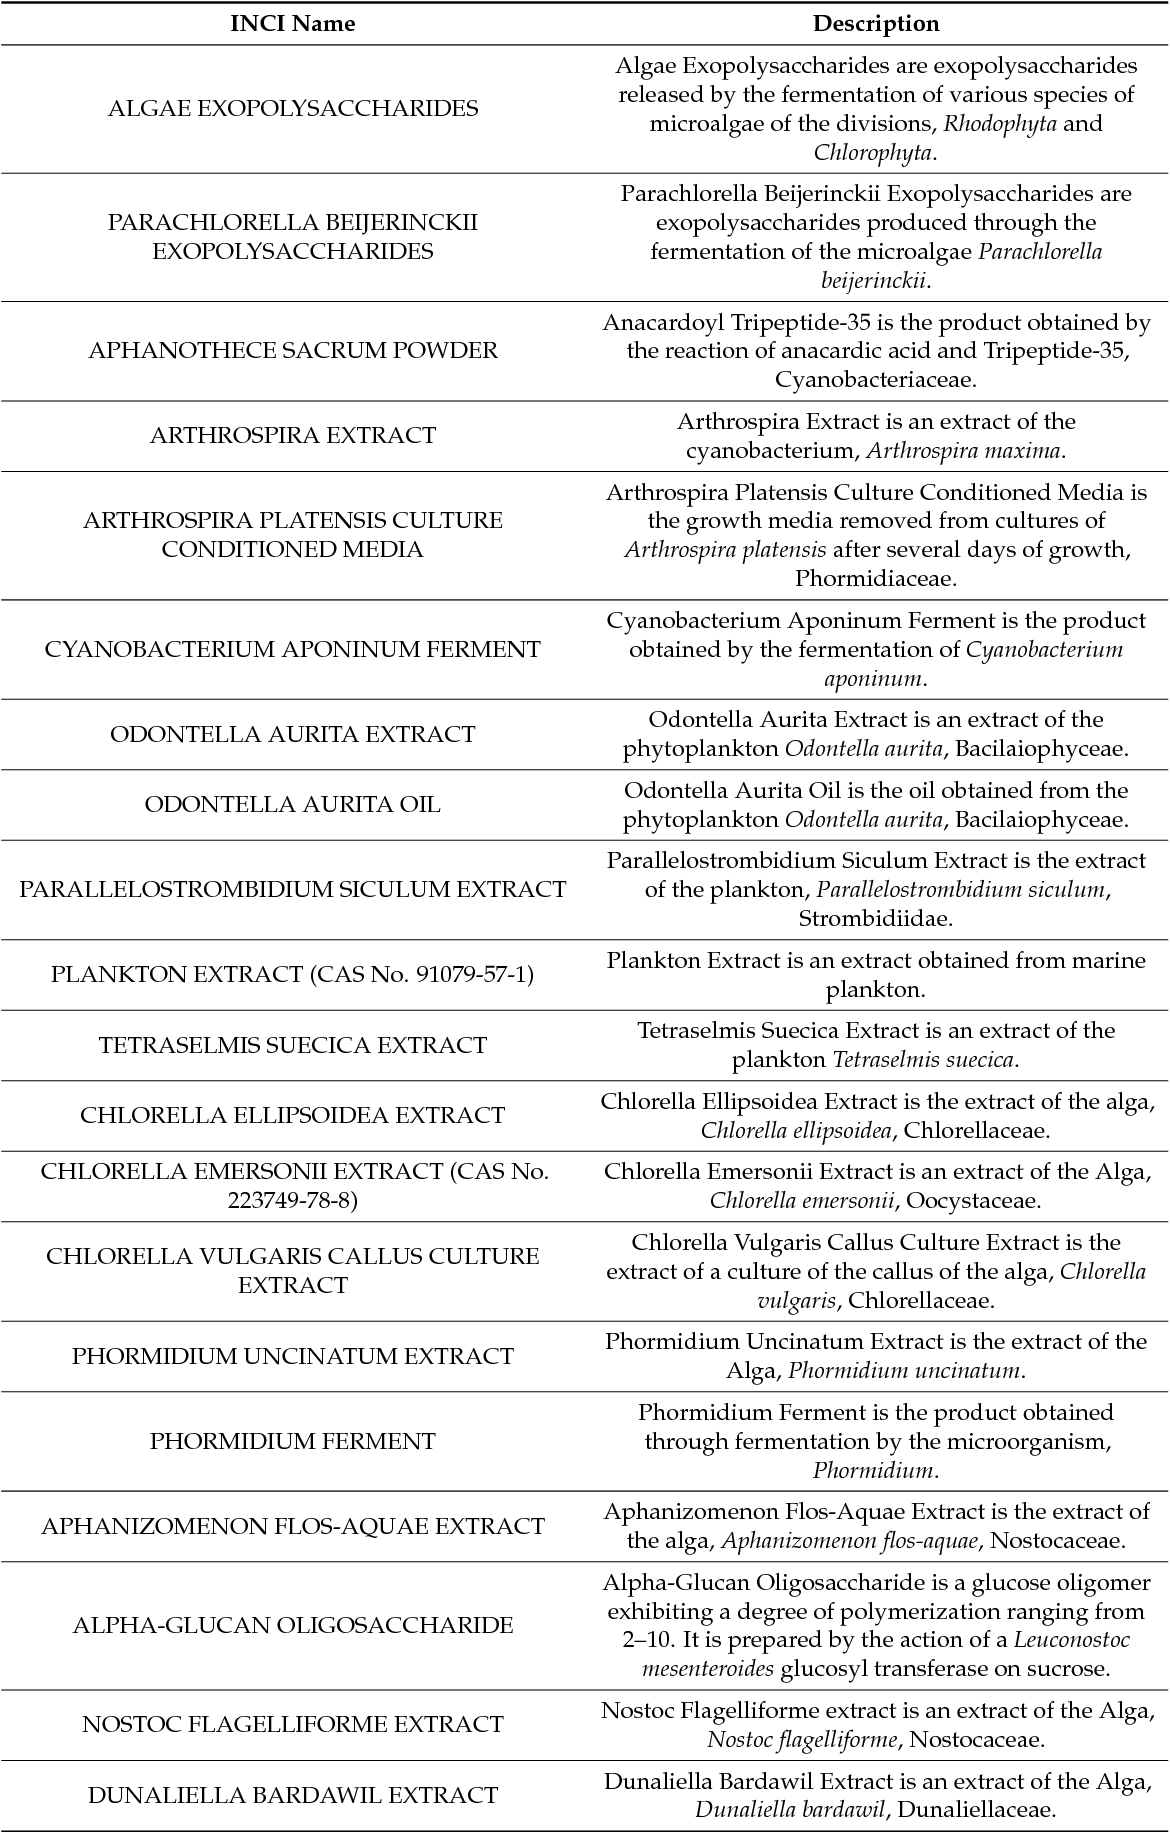 Table 2 from The Potential Use of Marine Microalgae and